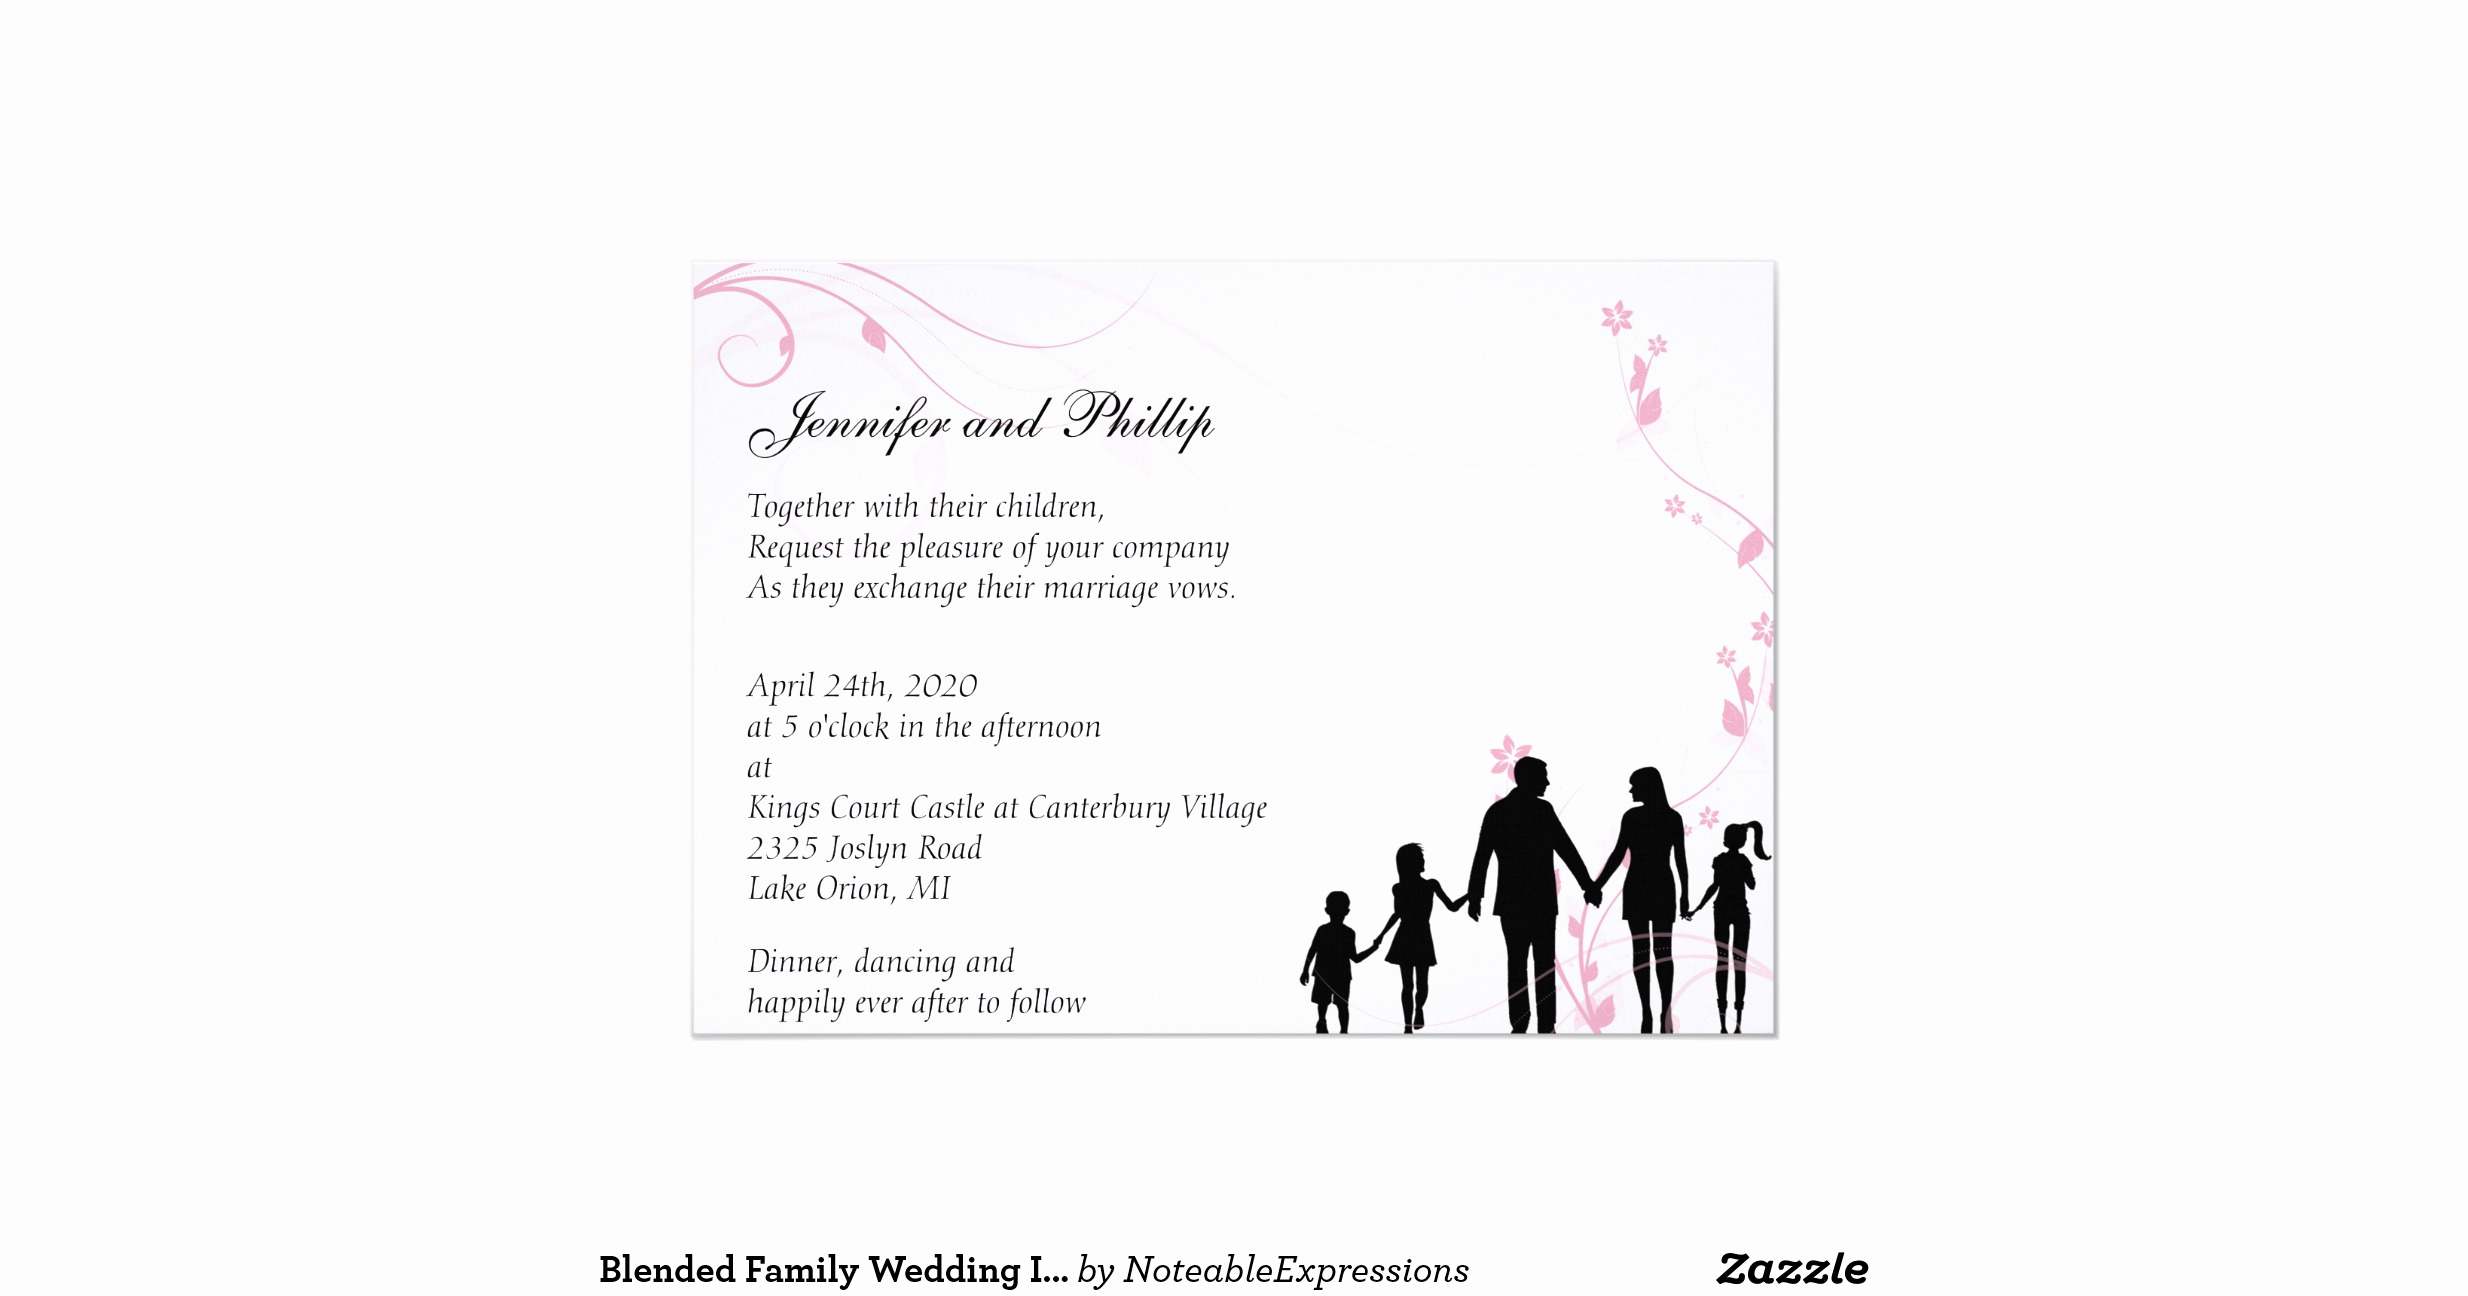 Blended Family Wedding Invitation Wording Awesome Blended Family Wedding Invitation